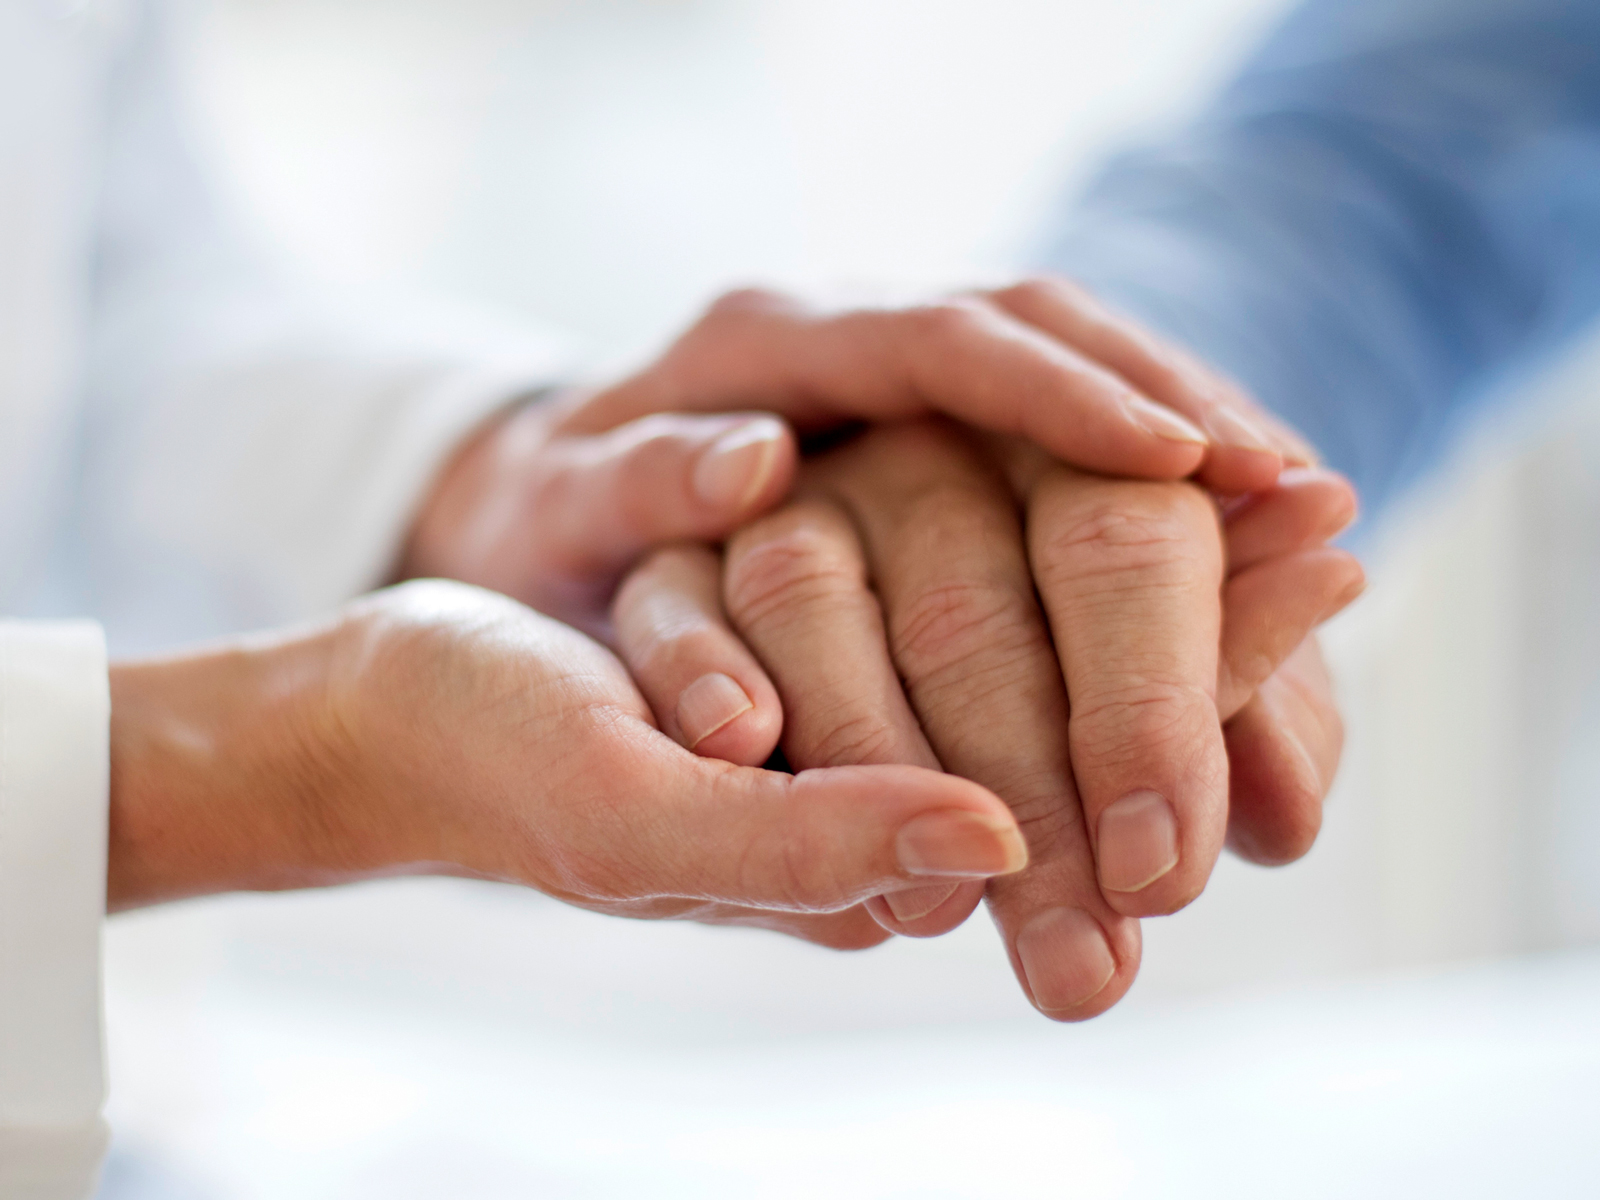 Close-up photograph of doctor holding patient's hand.